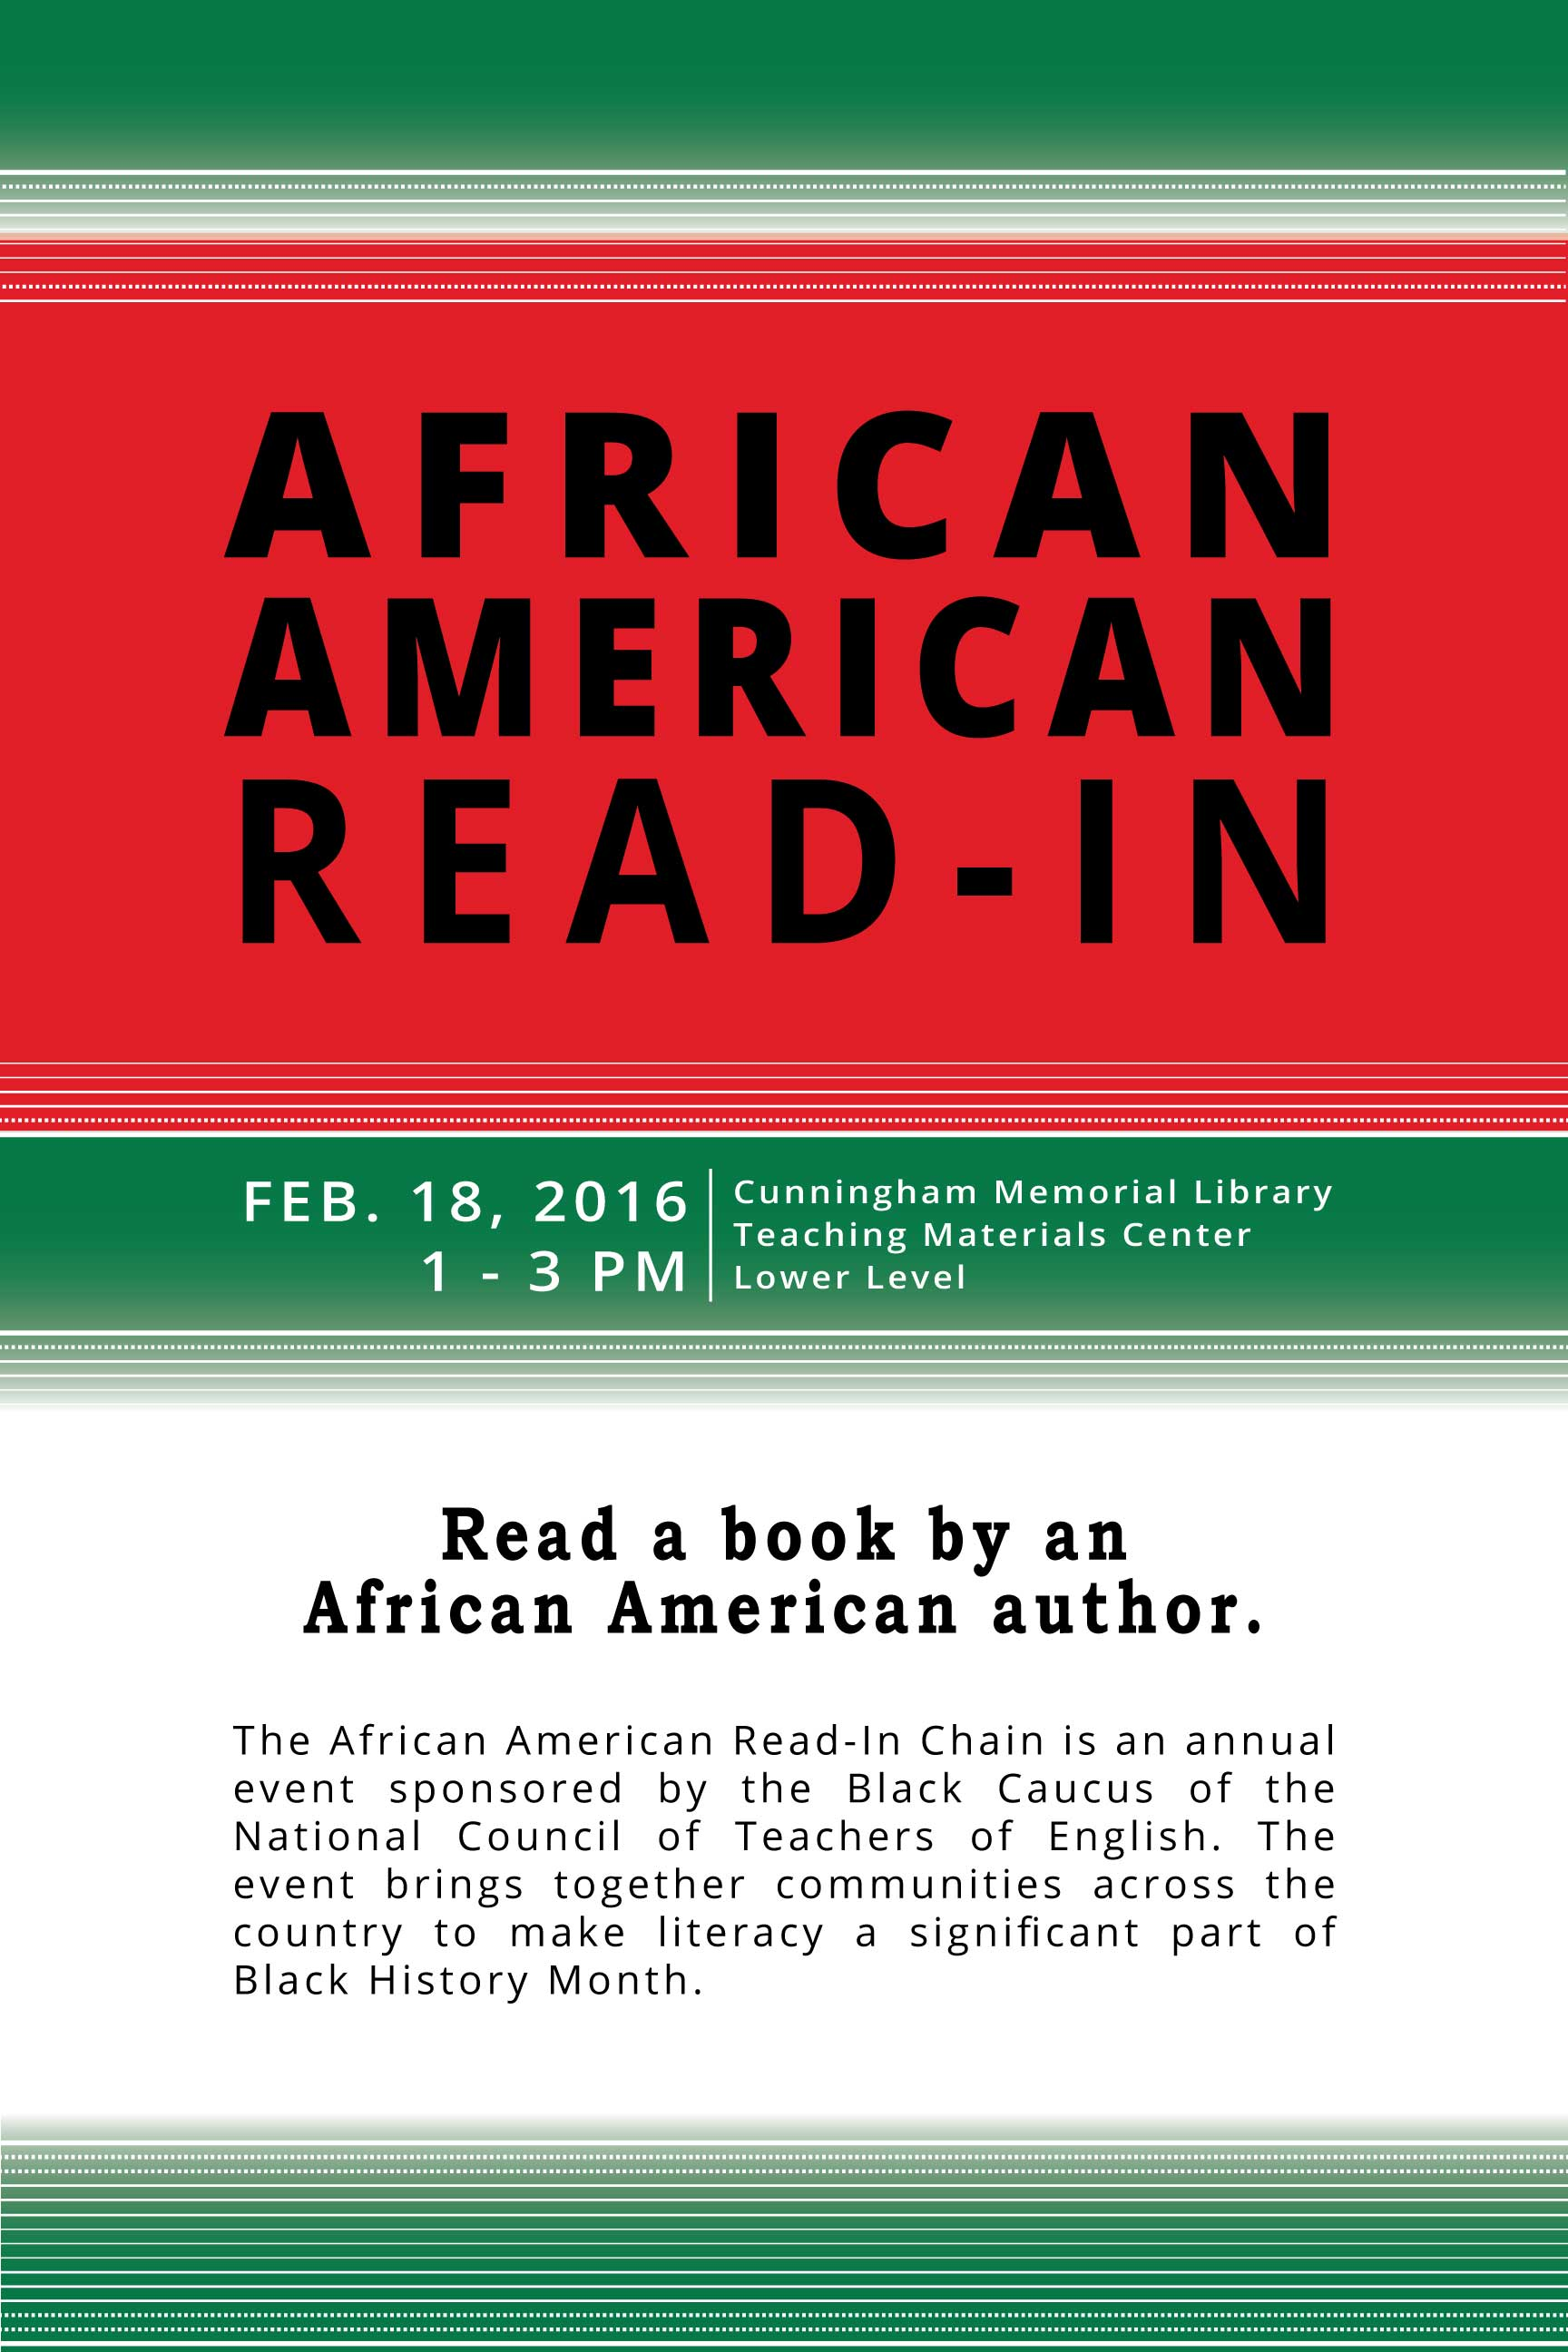 2016-Feb18-African-American-Read-In-2016---POSTER